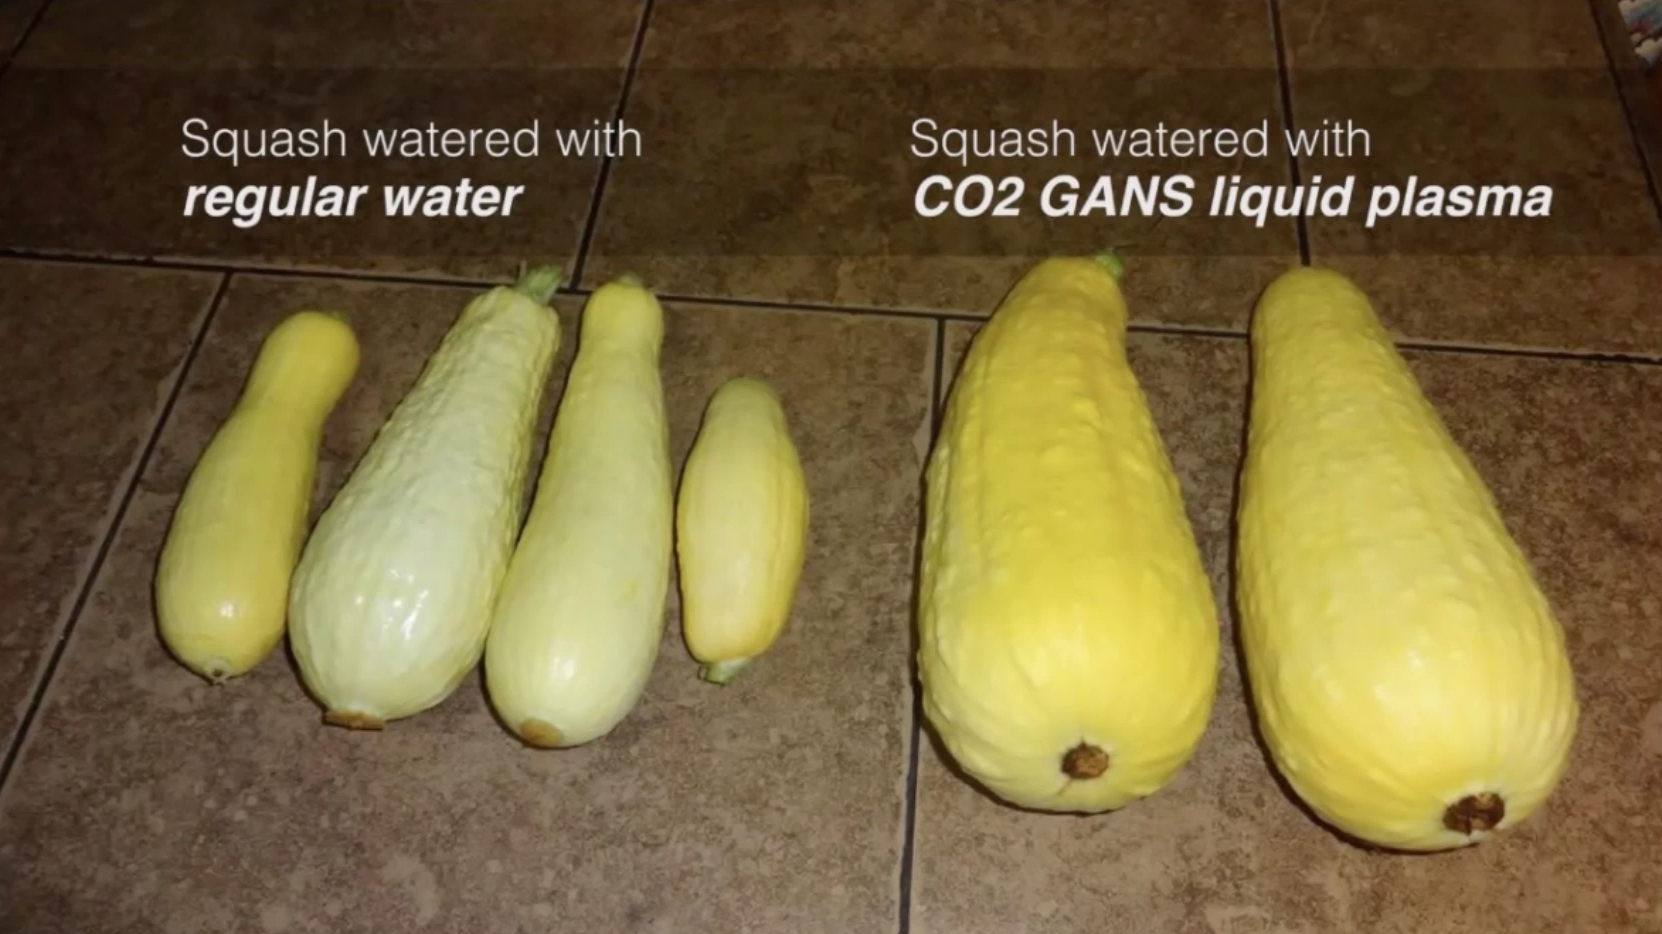 Squash with GANS